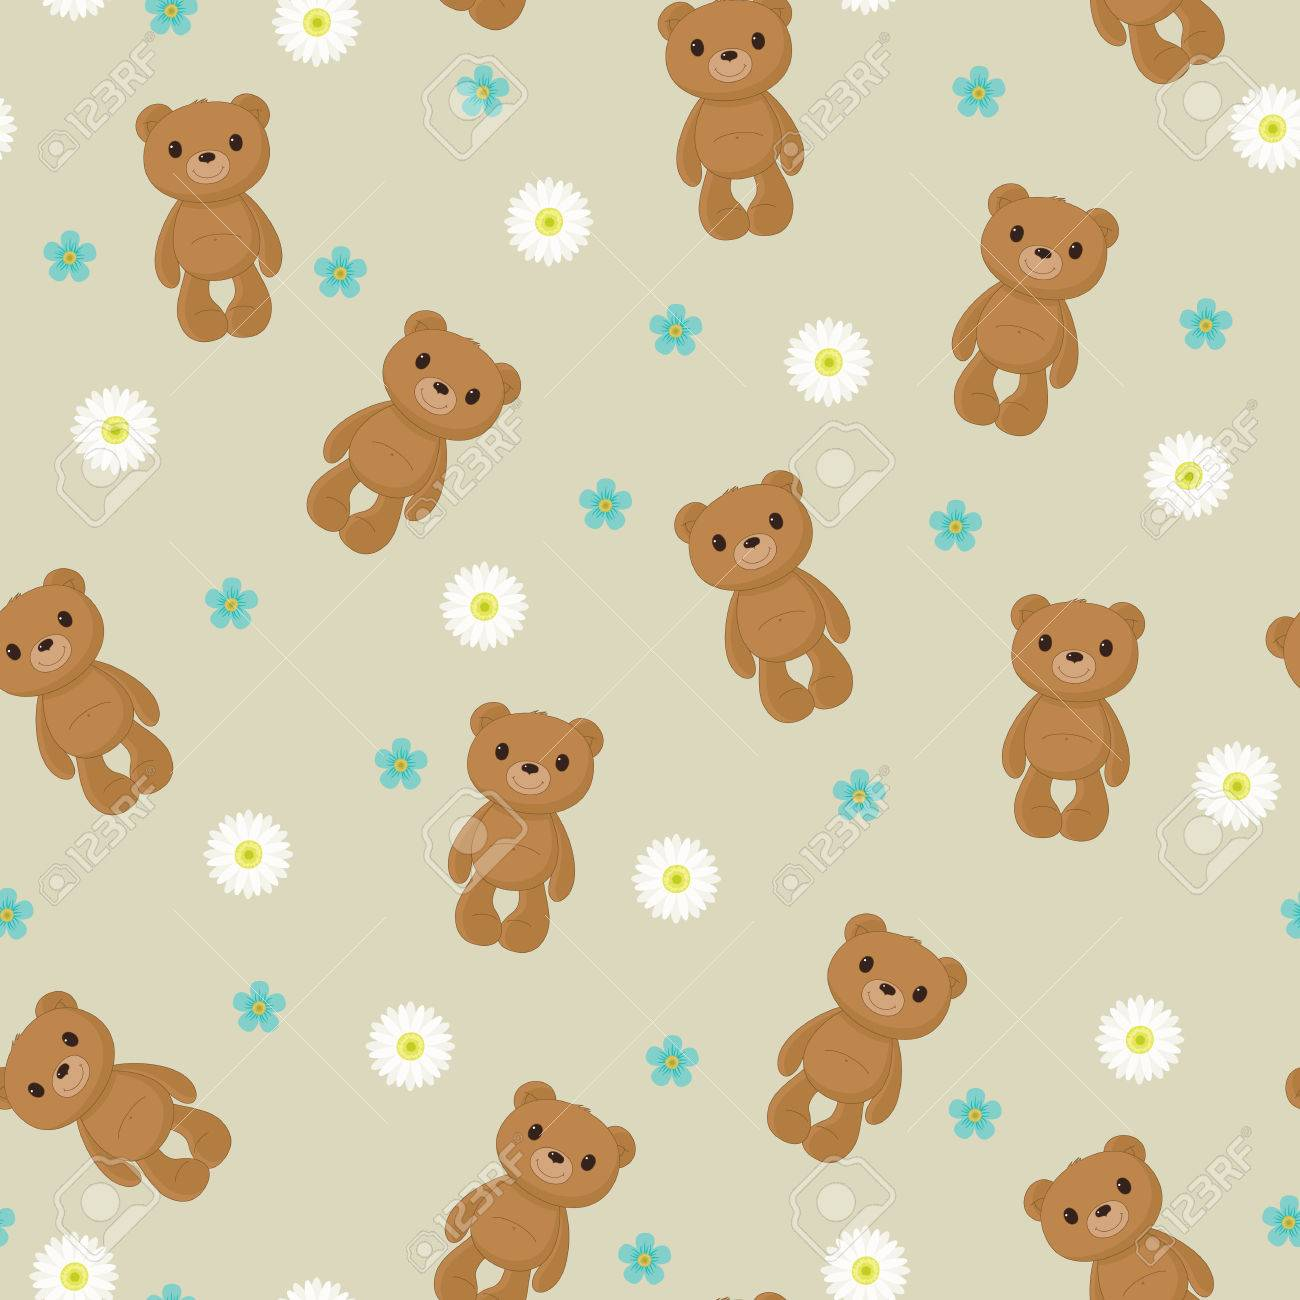 Seamless Wallpaper With Cute Teddy Bear On Floral Background